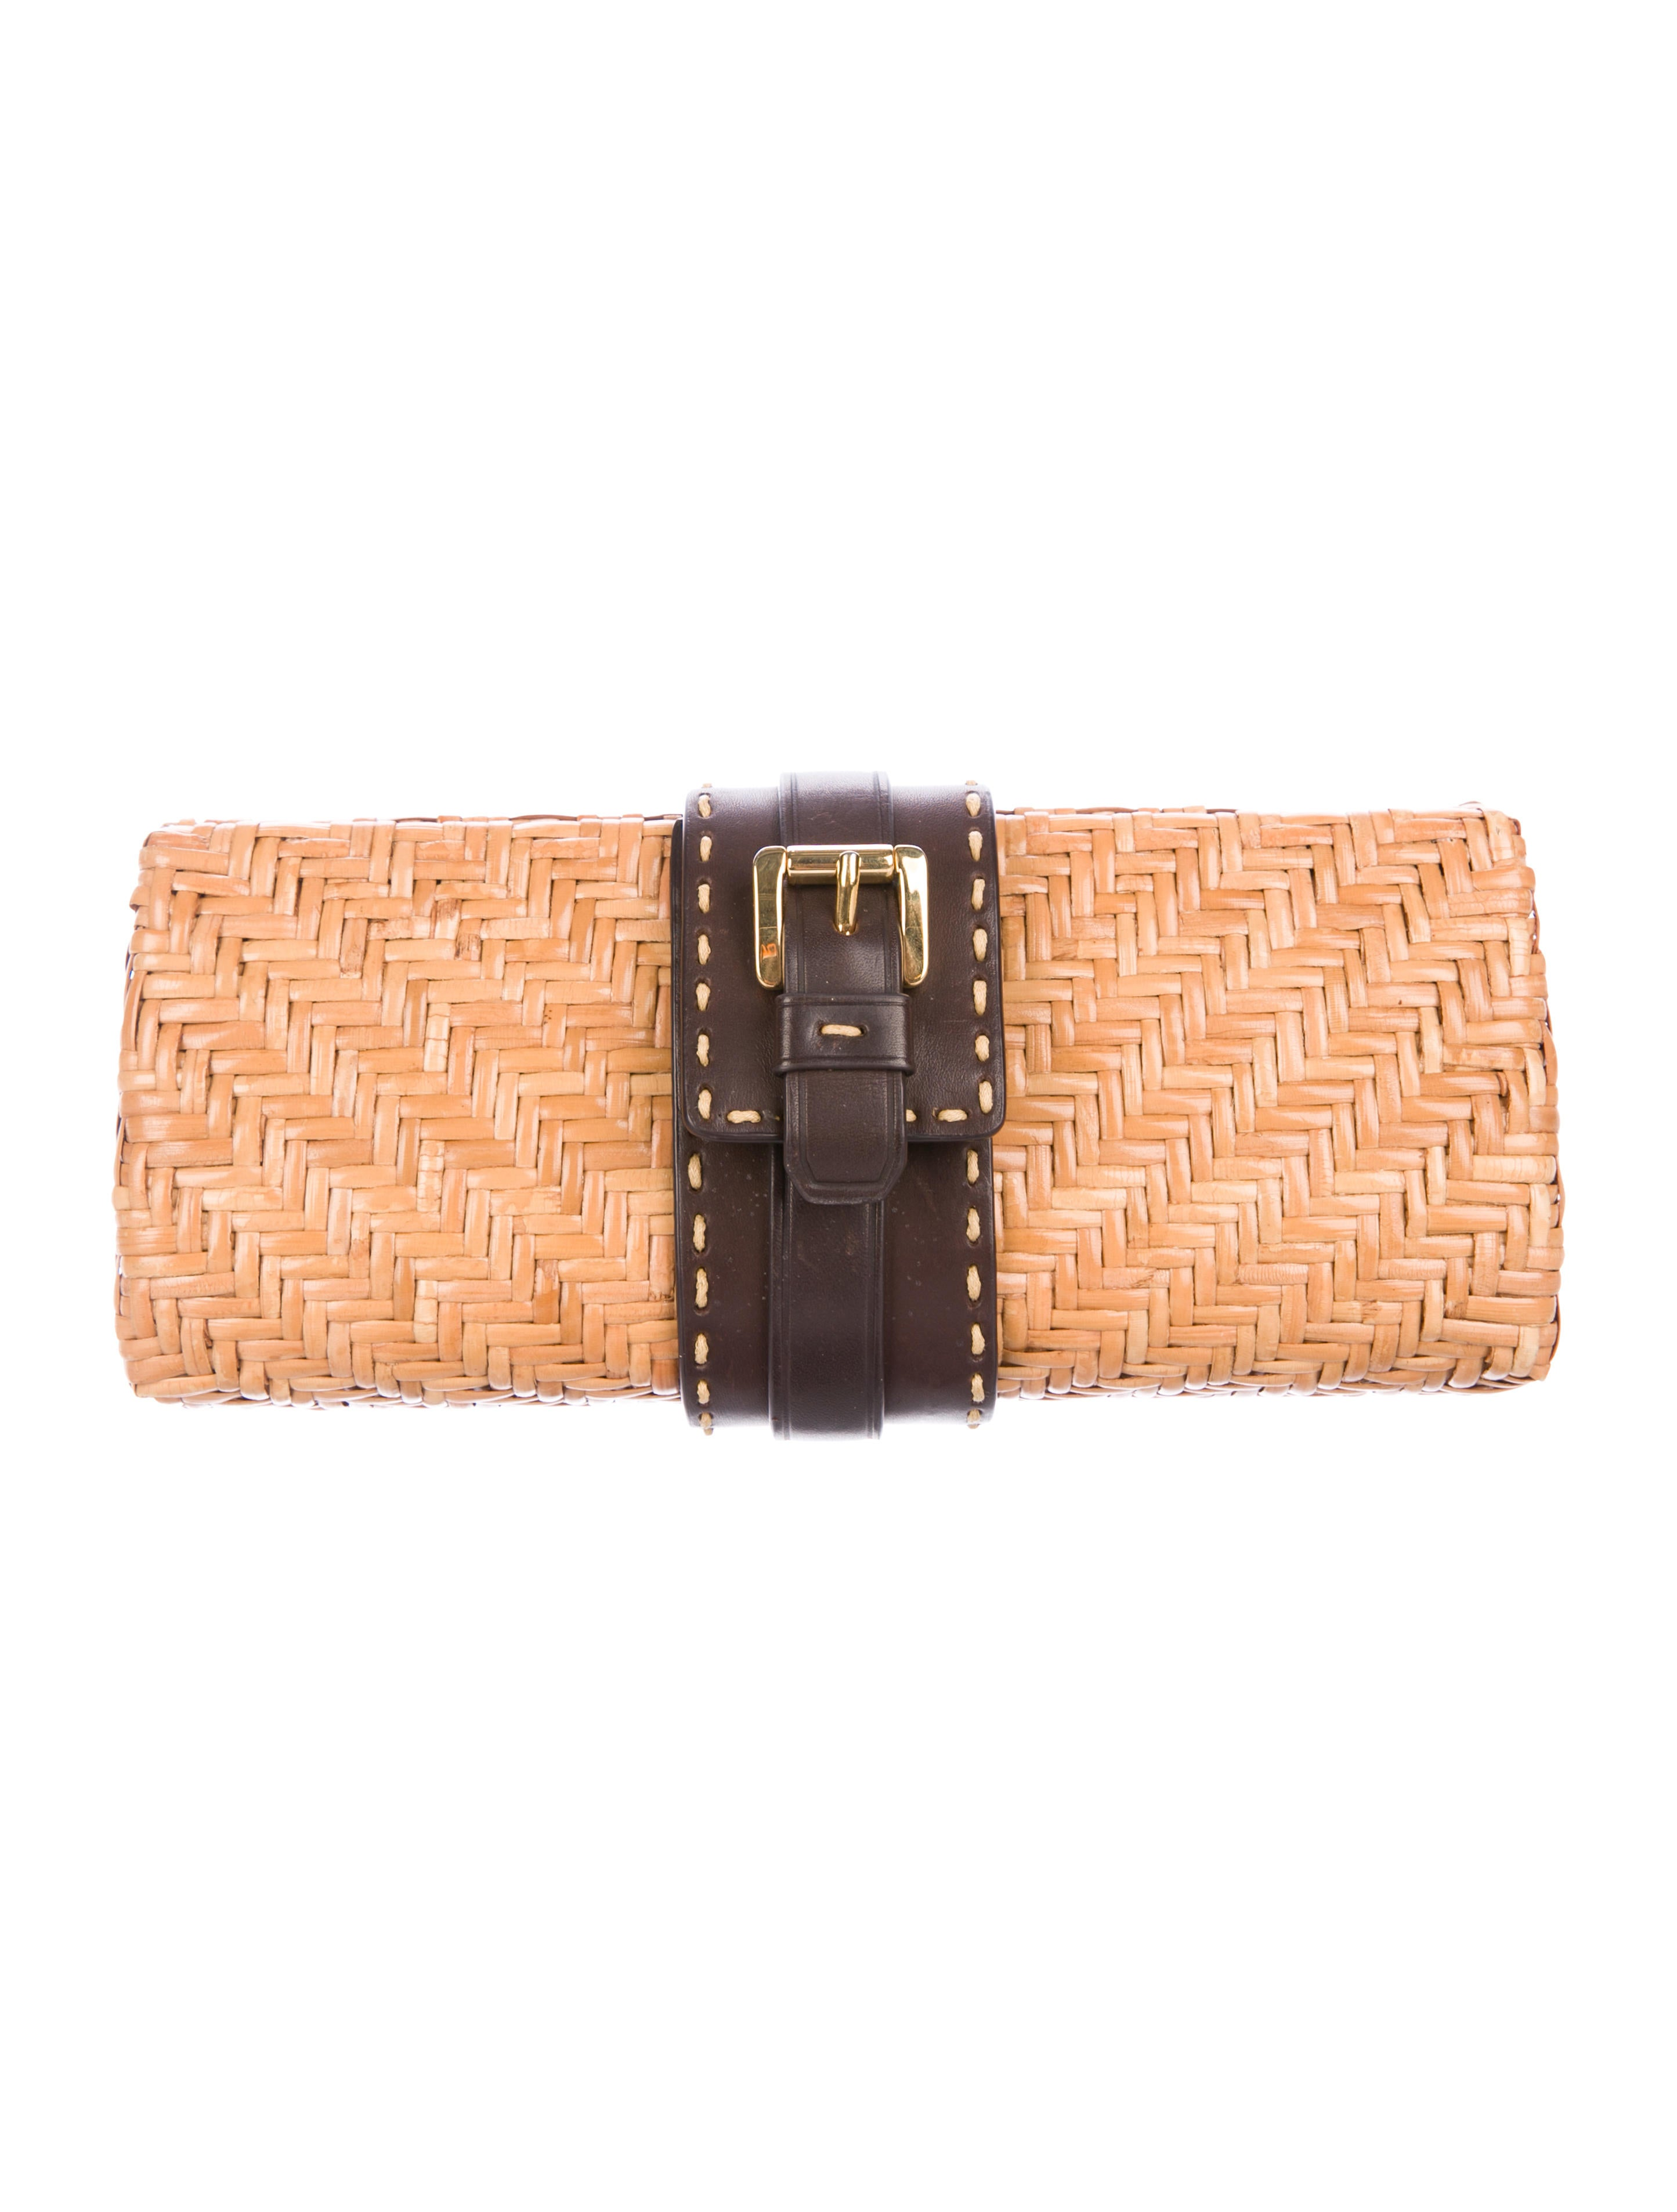 3ee71f0505 Michael Kors Leather-Trimmed Woven Straw Clutch - Handbags ...